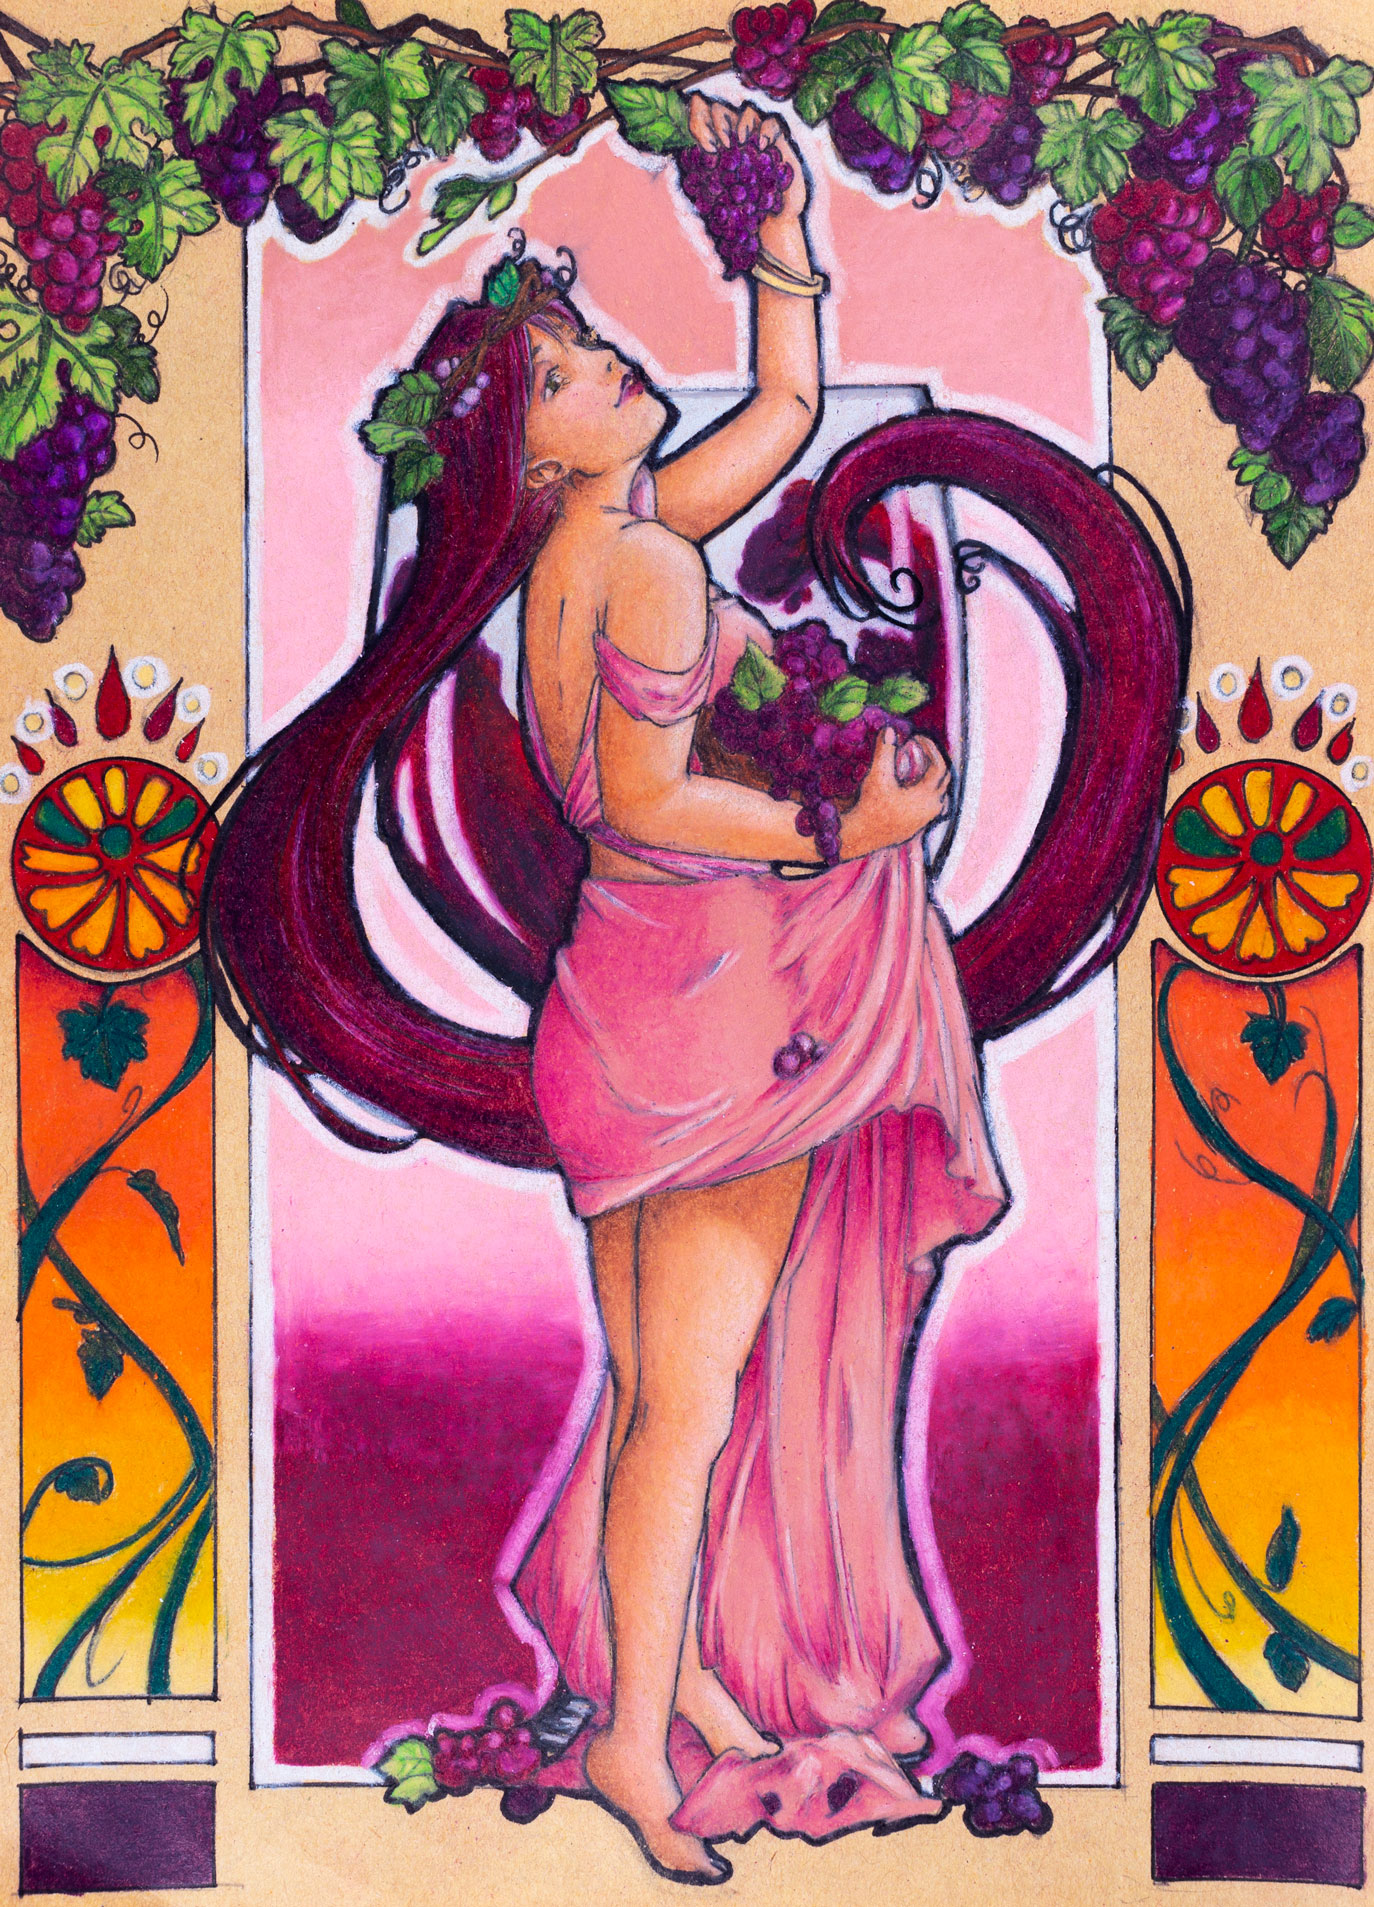 wine-illustration-sm.jpg